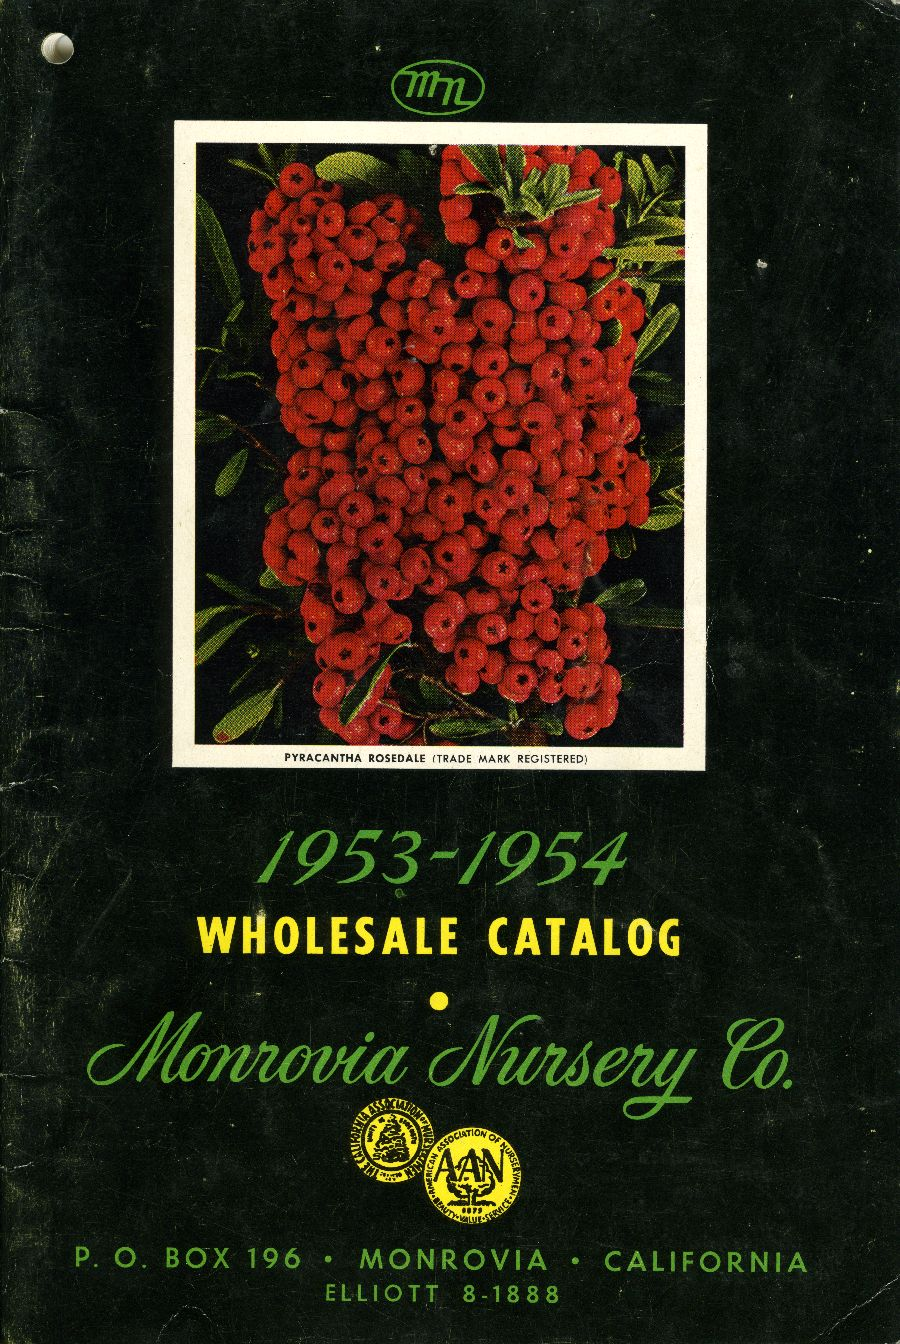 Monrovia Nursery Co Whole Catalog 1953